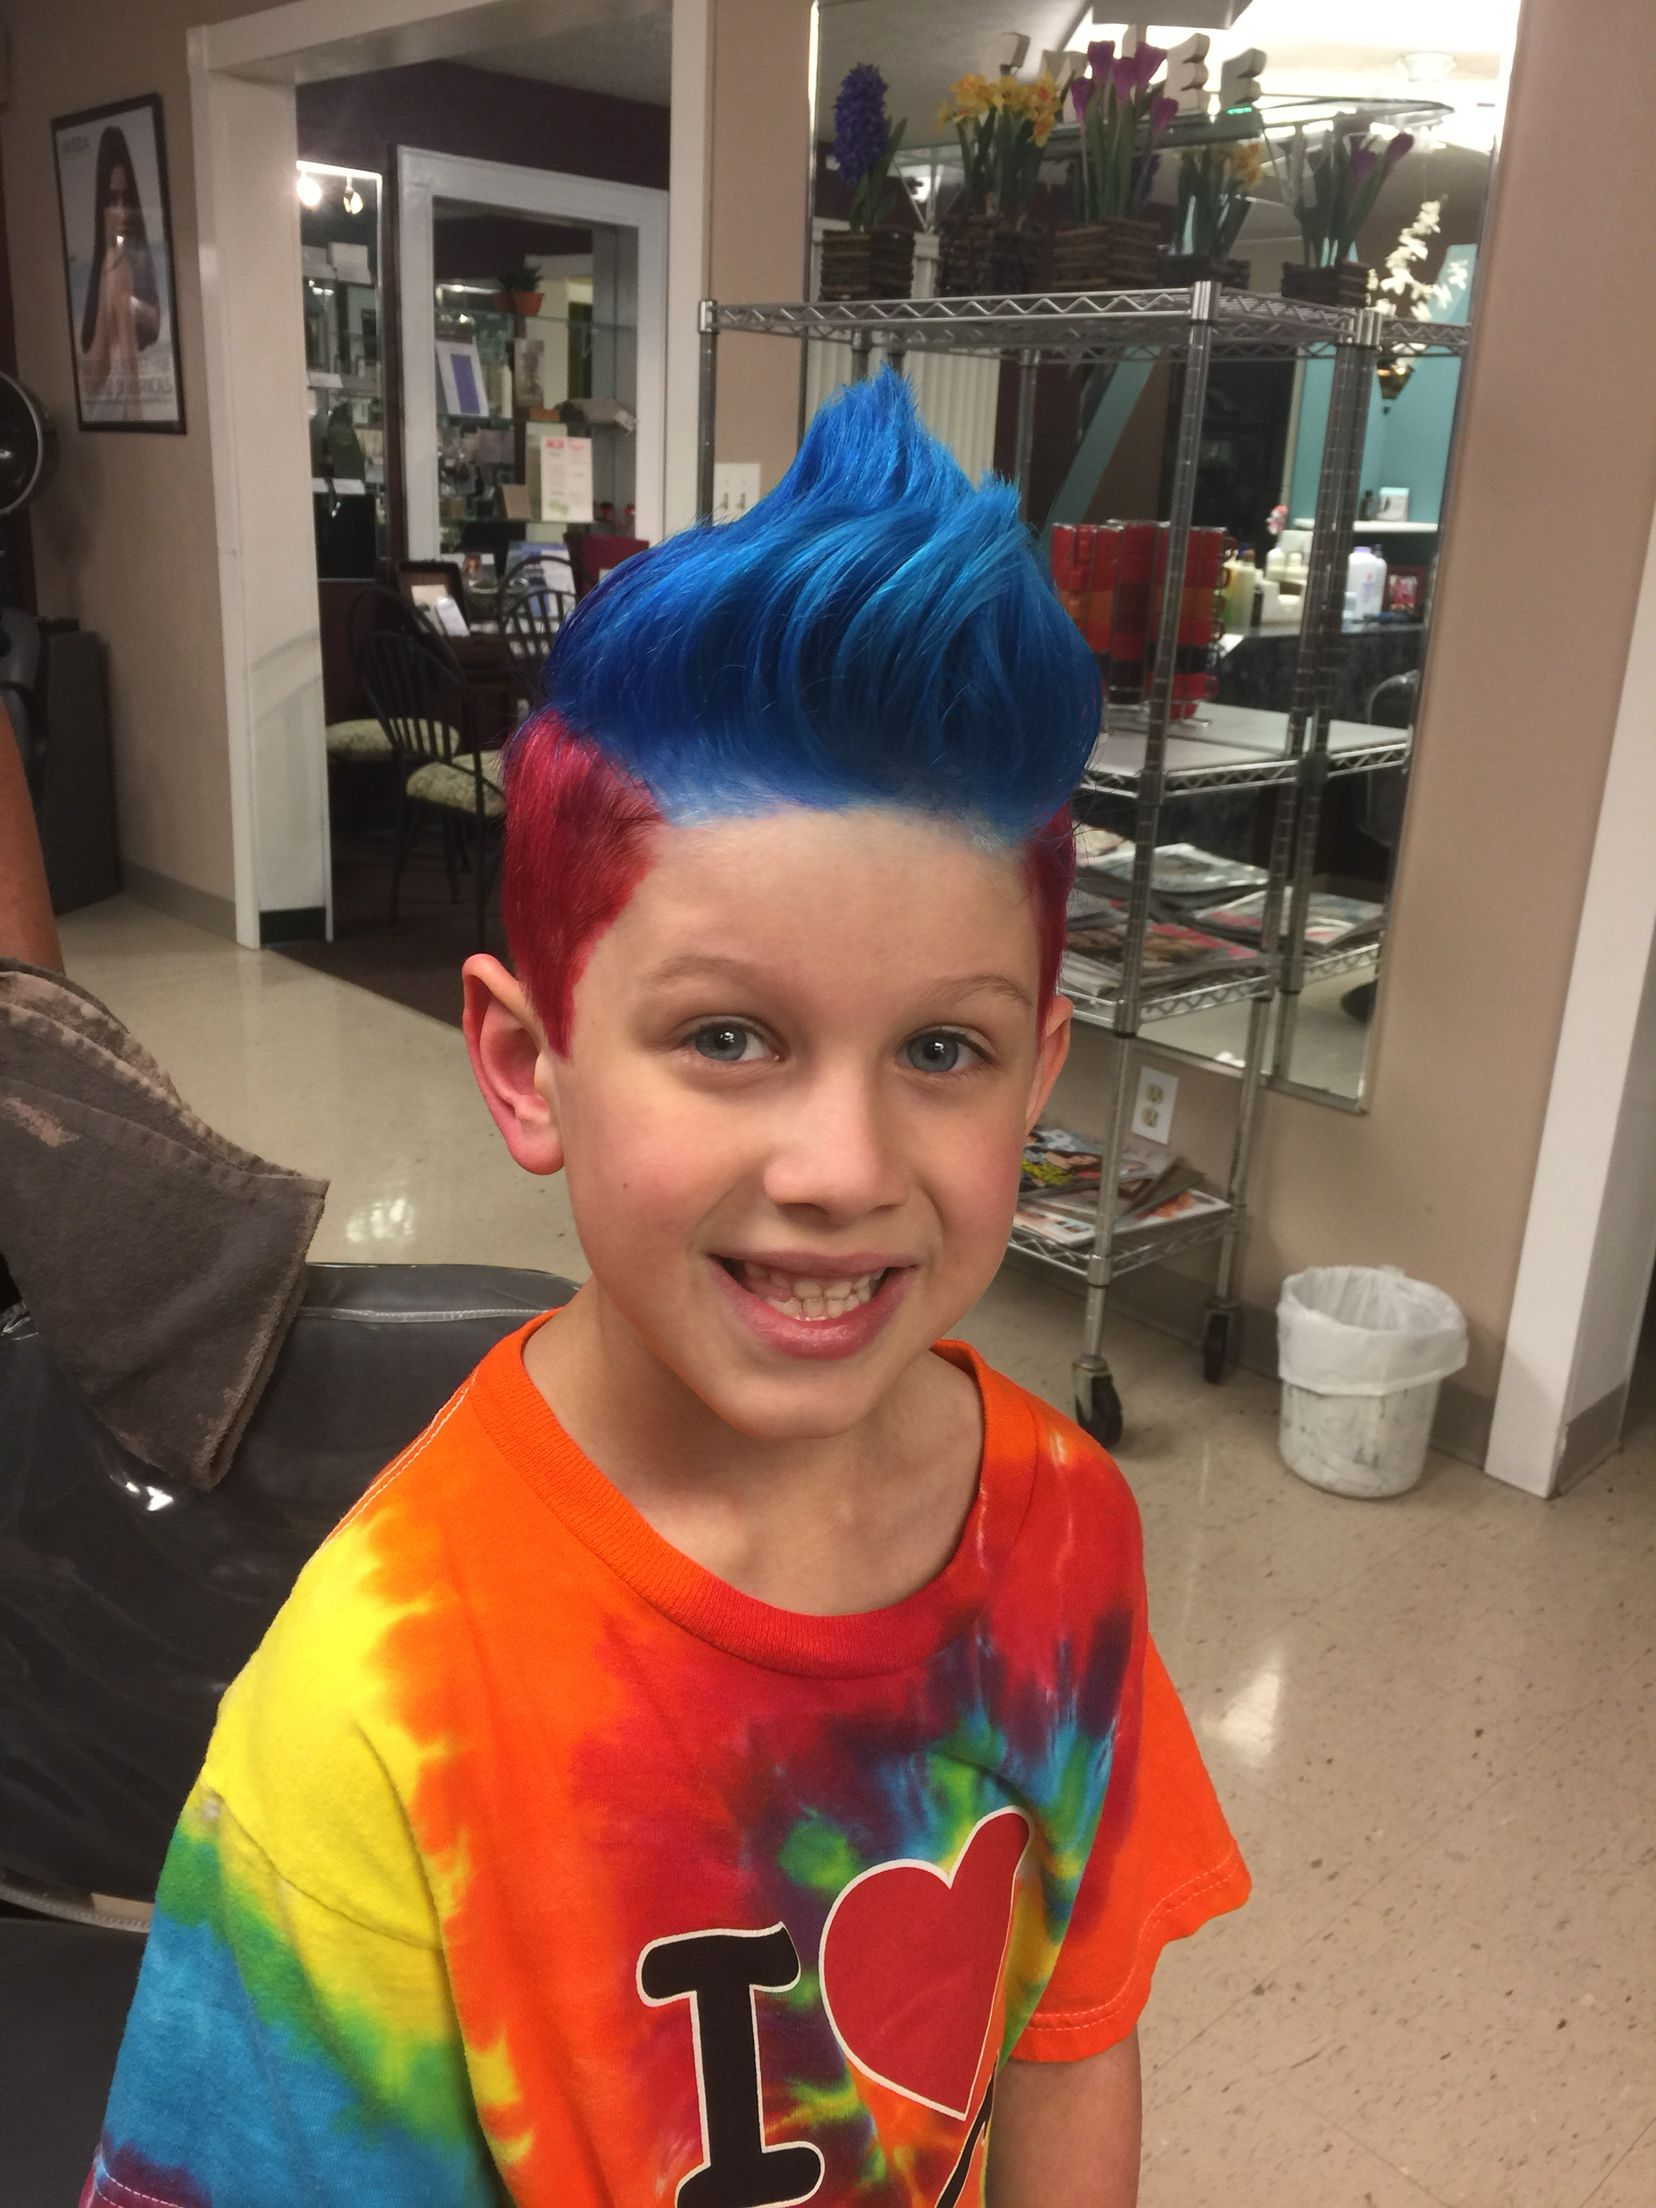 Red And Blue Boy Hair Boy Hairstyles Red And Blue Women